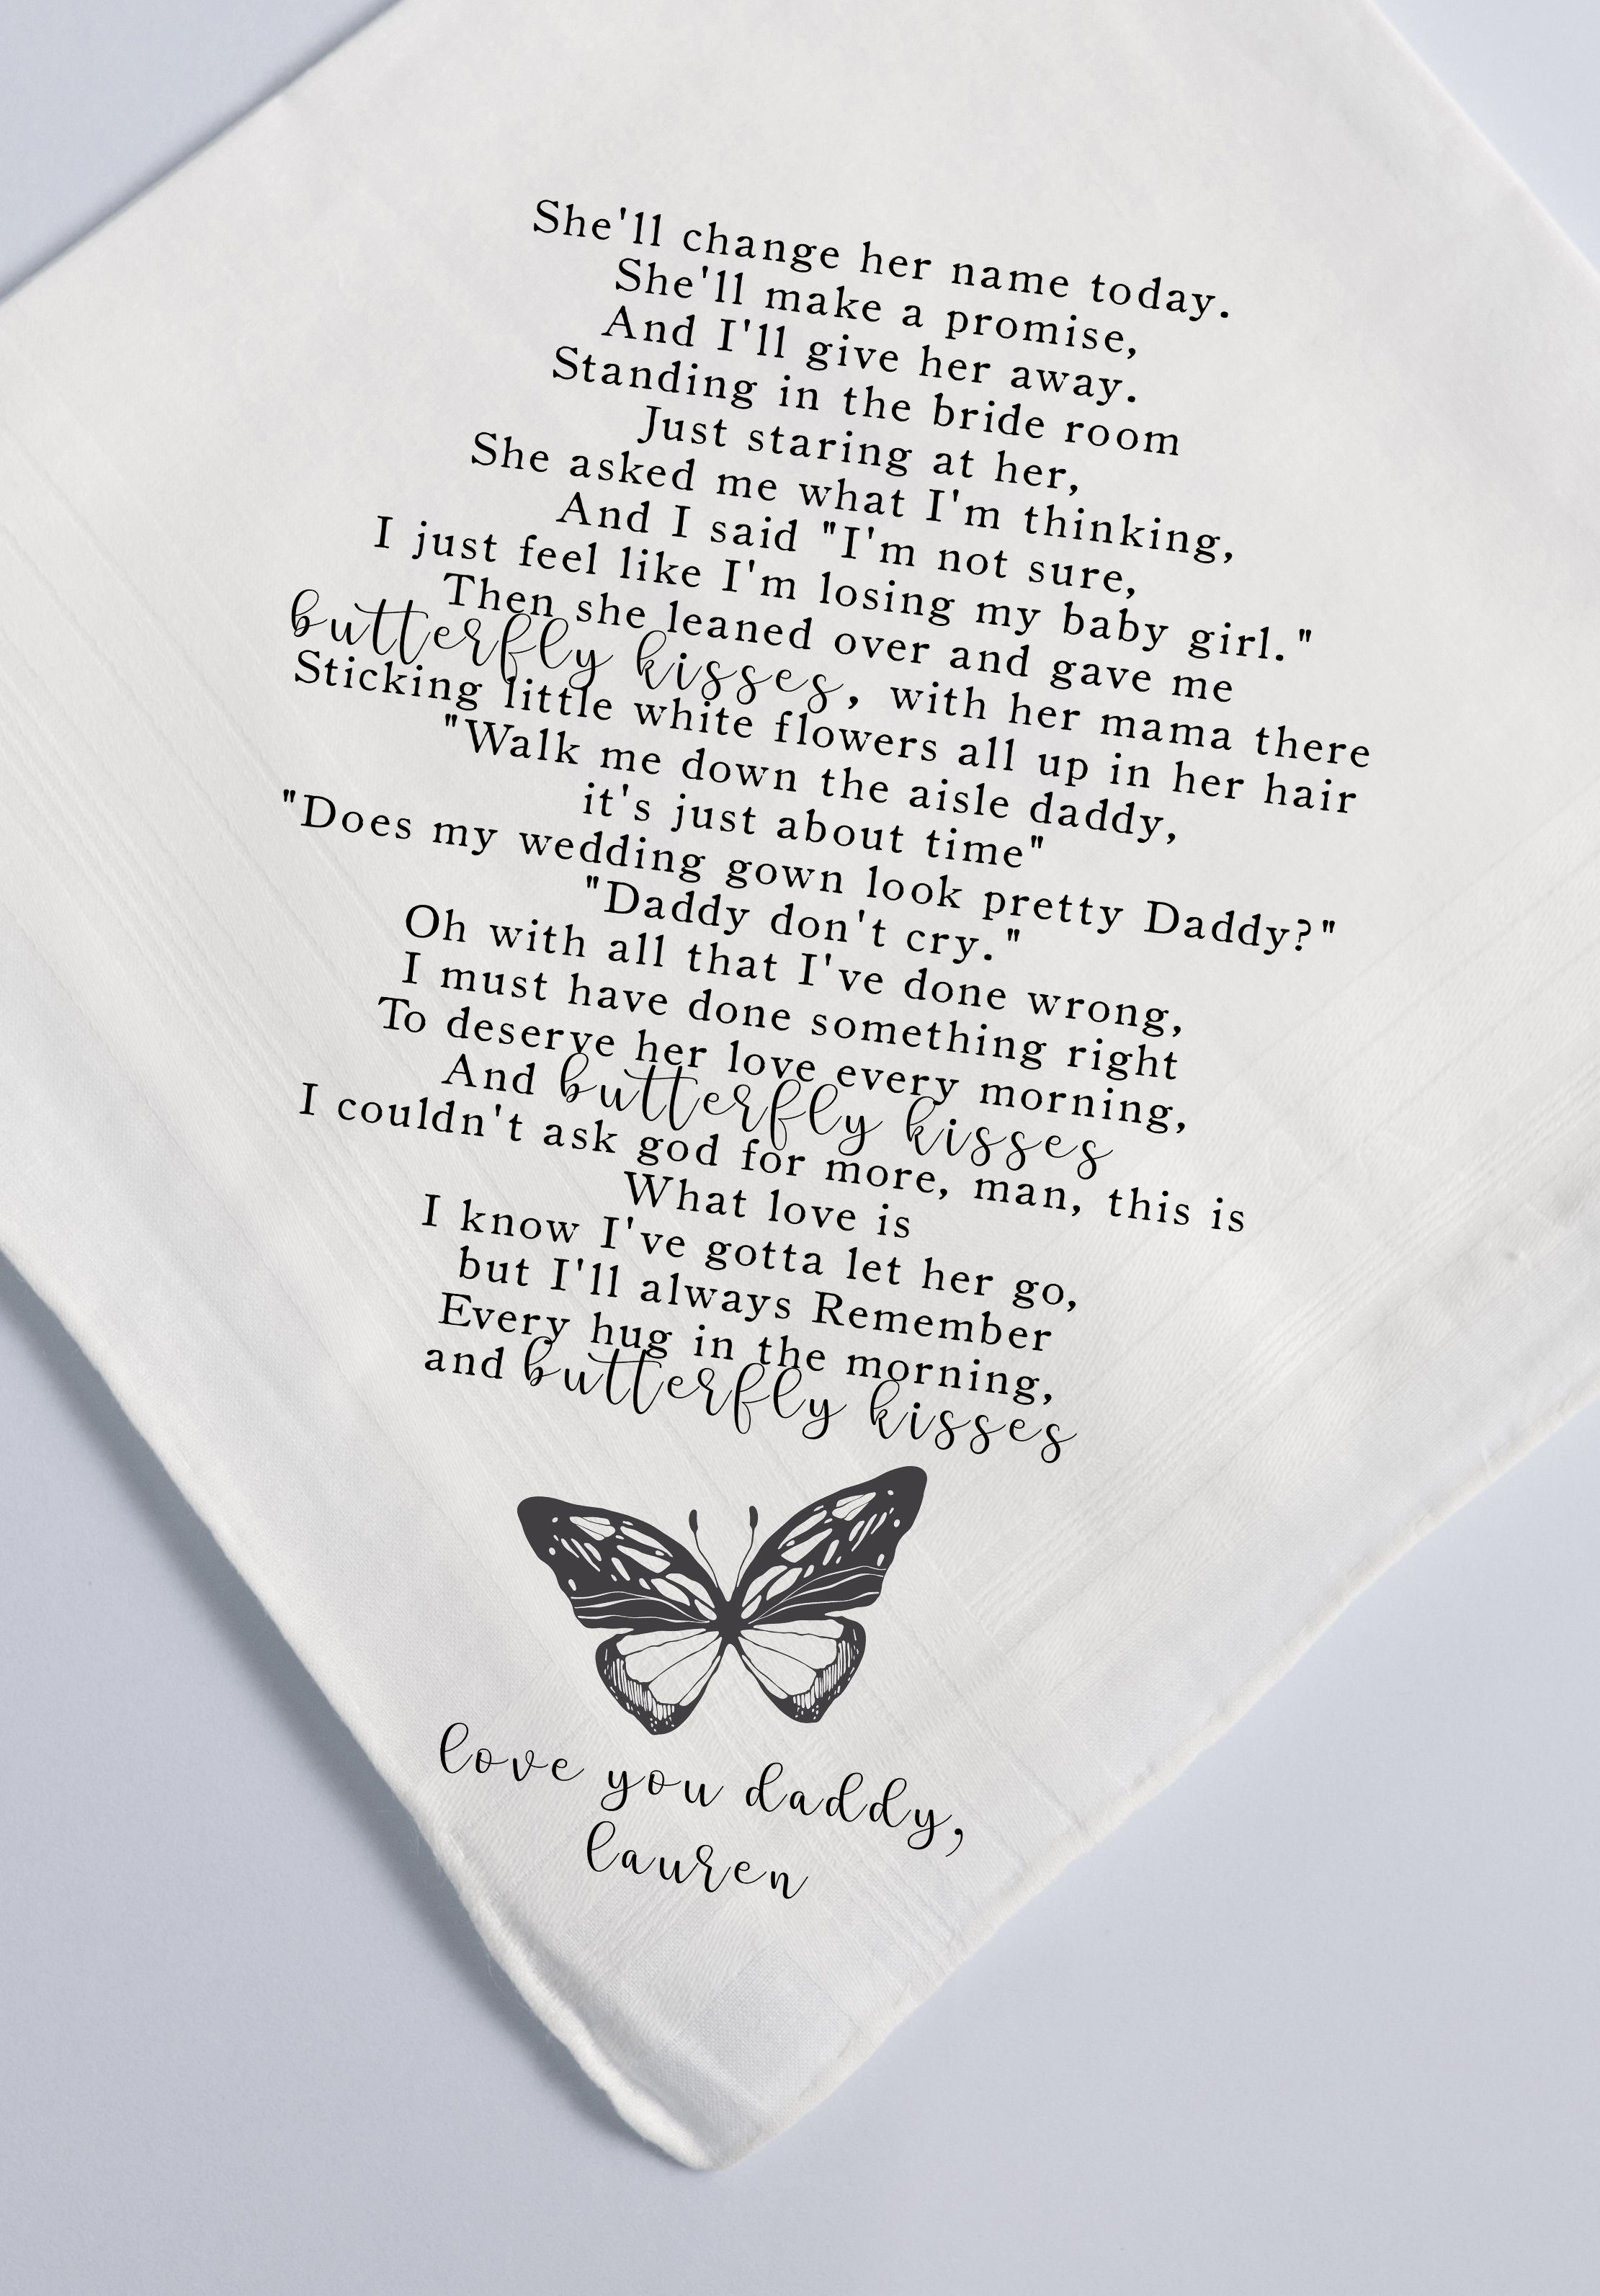 Father Of The Bride Handkerchief Butterfly Kisses Song Lyrics Gift Dad Gift From Daughter Custom Handkerchief Personalized Hankie 297 Butterfly Kisses Song Father Of The Bride Lyric Gift